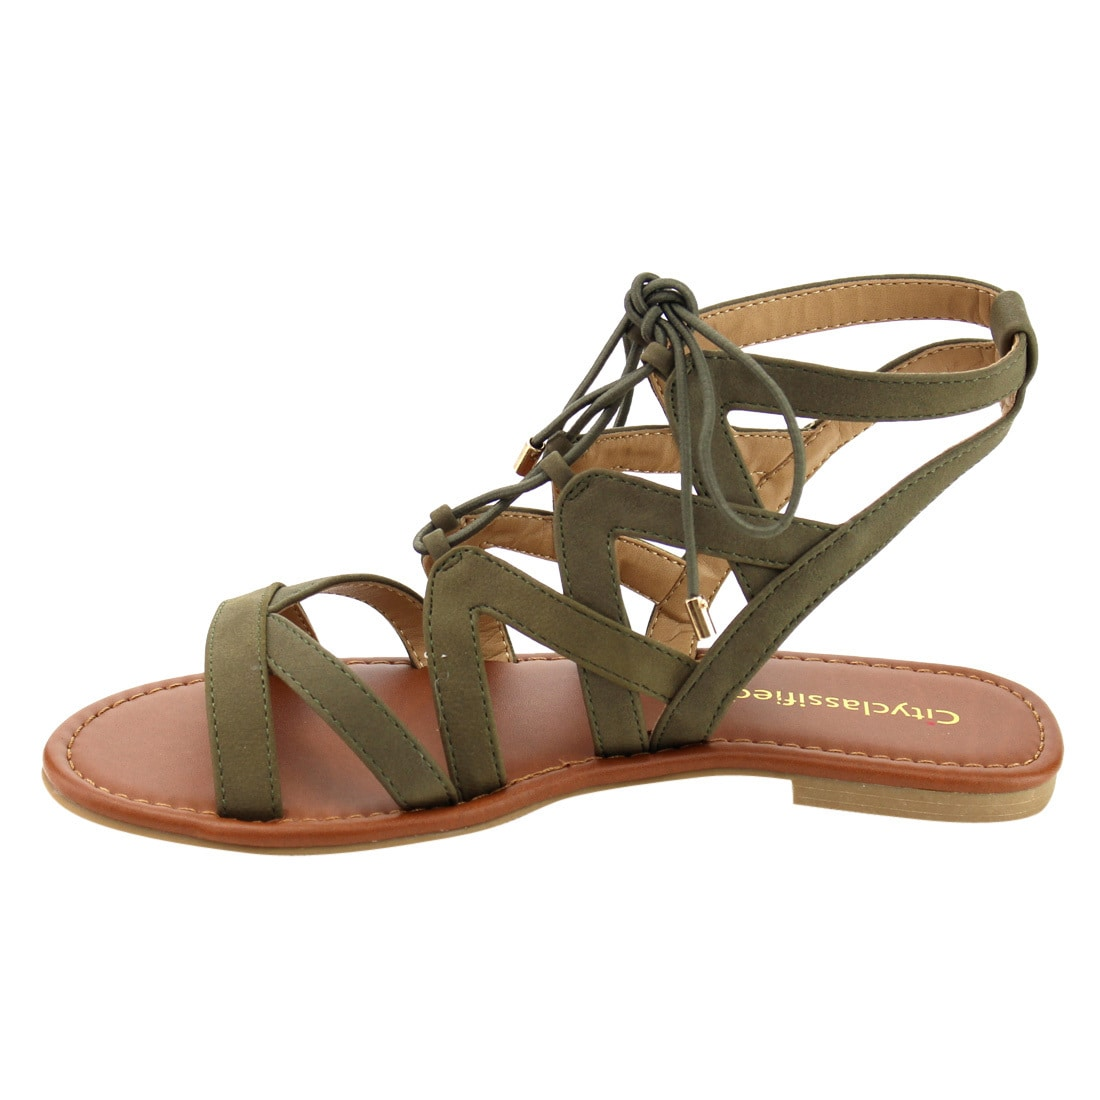 2ff5ec4946462f Shop CityClassified ID44 Women Lace Up Criss Cross Strappy Backless Flat  Sandals - Free Shipping On Orders Over  45 - Overstock - 15914647